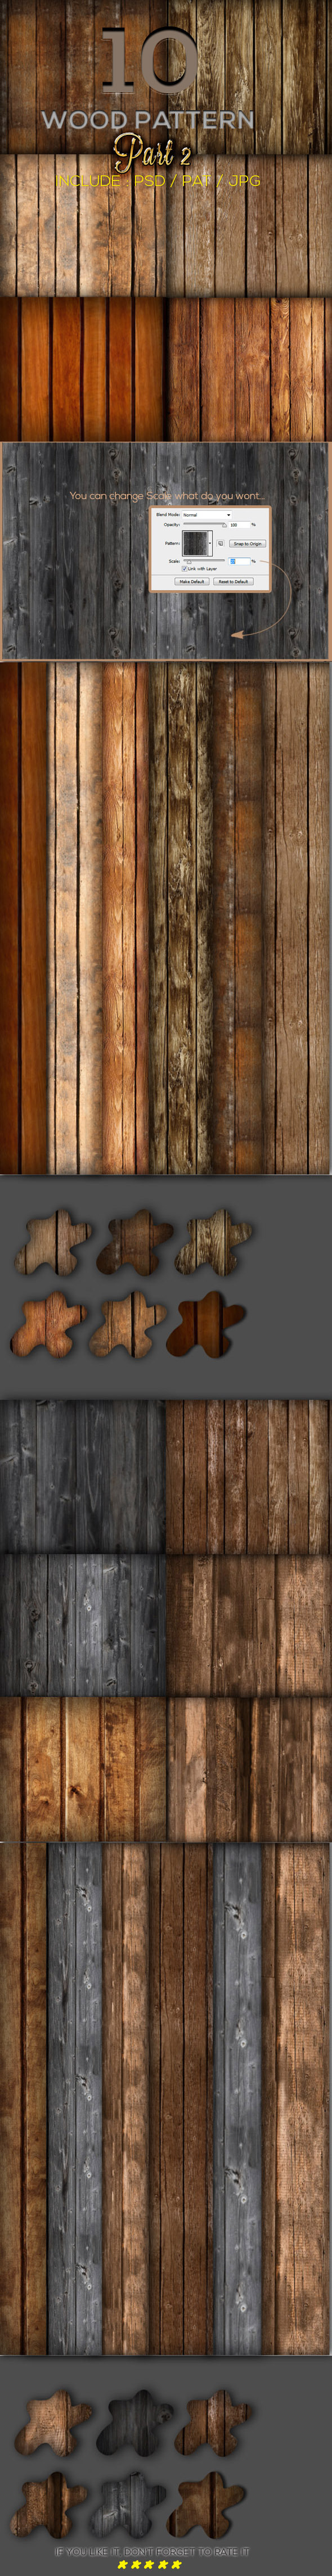 10 Wood Pattern Part 2 - Textures / Fills / Patterns Photoshop